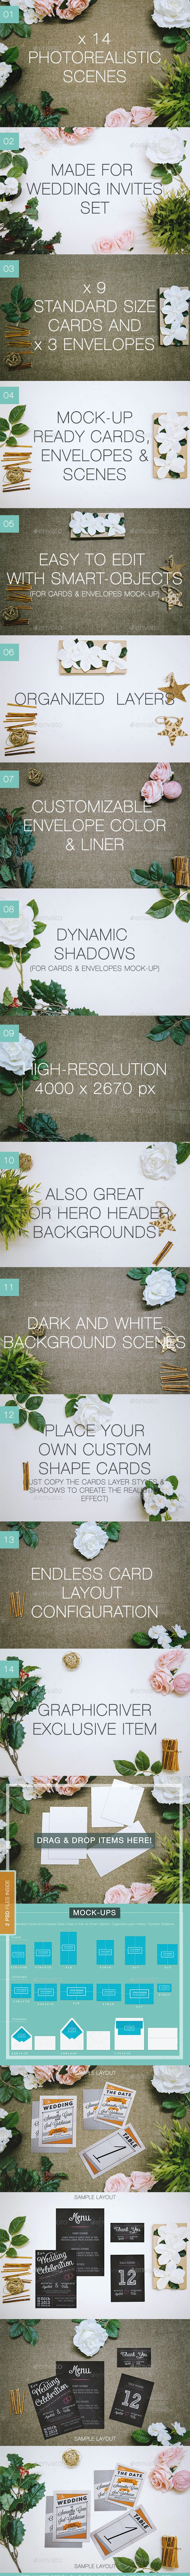 Photorealistic Cards and Invites Mock-Up Maker v2 - Hero Images Graphics